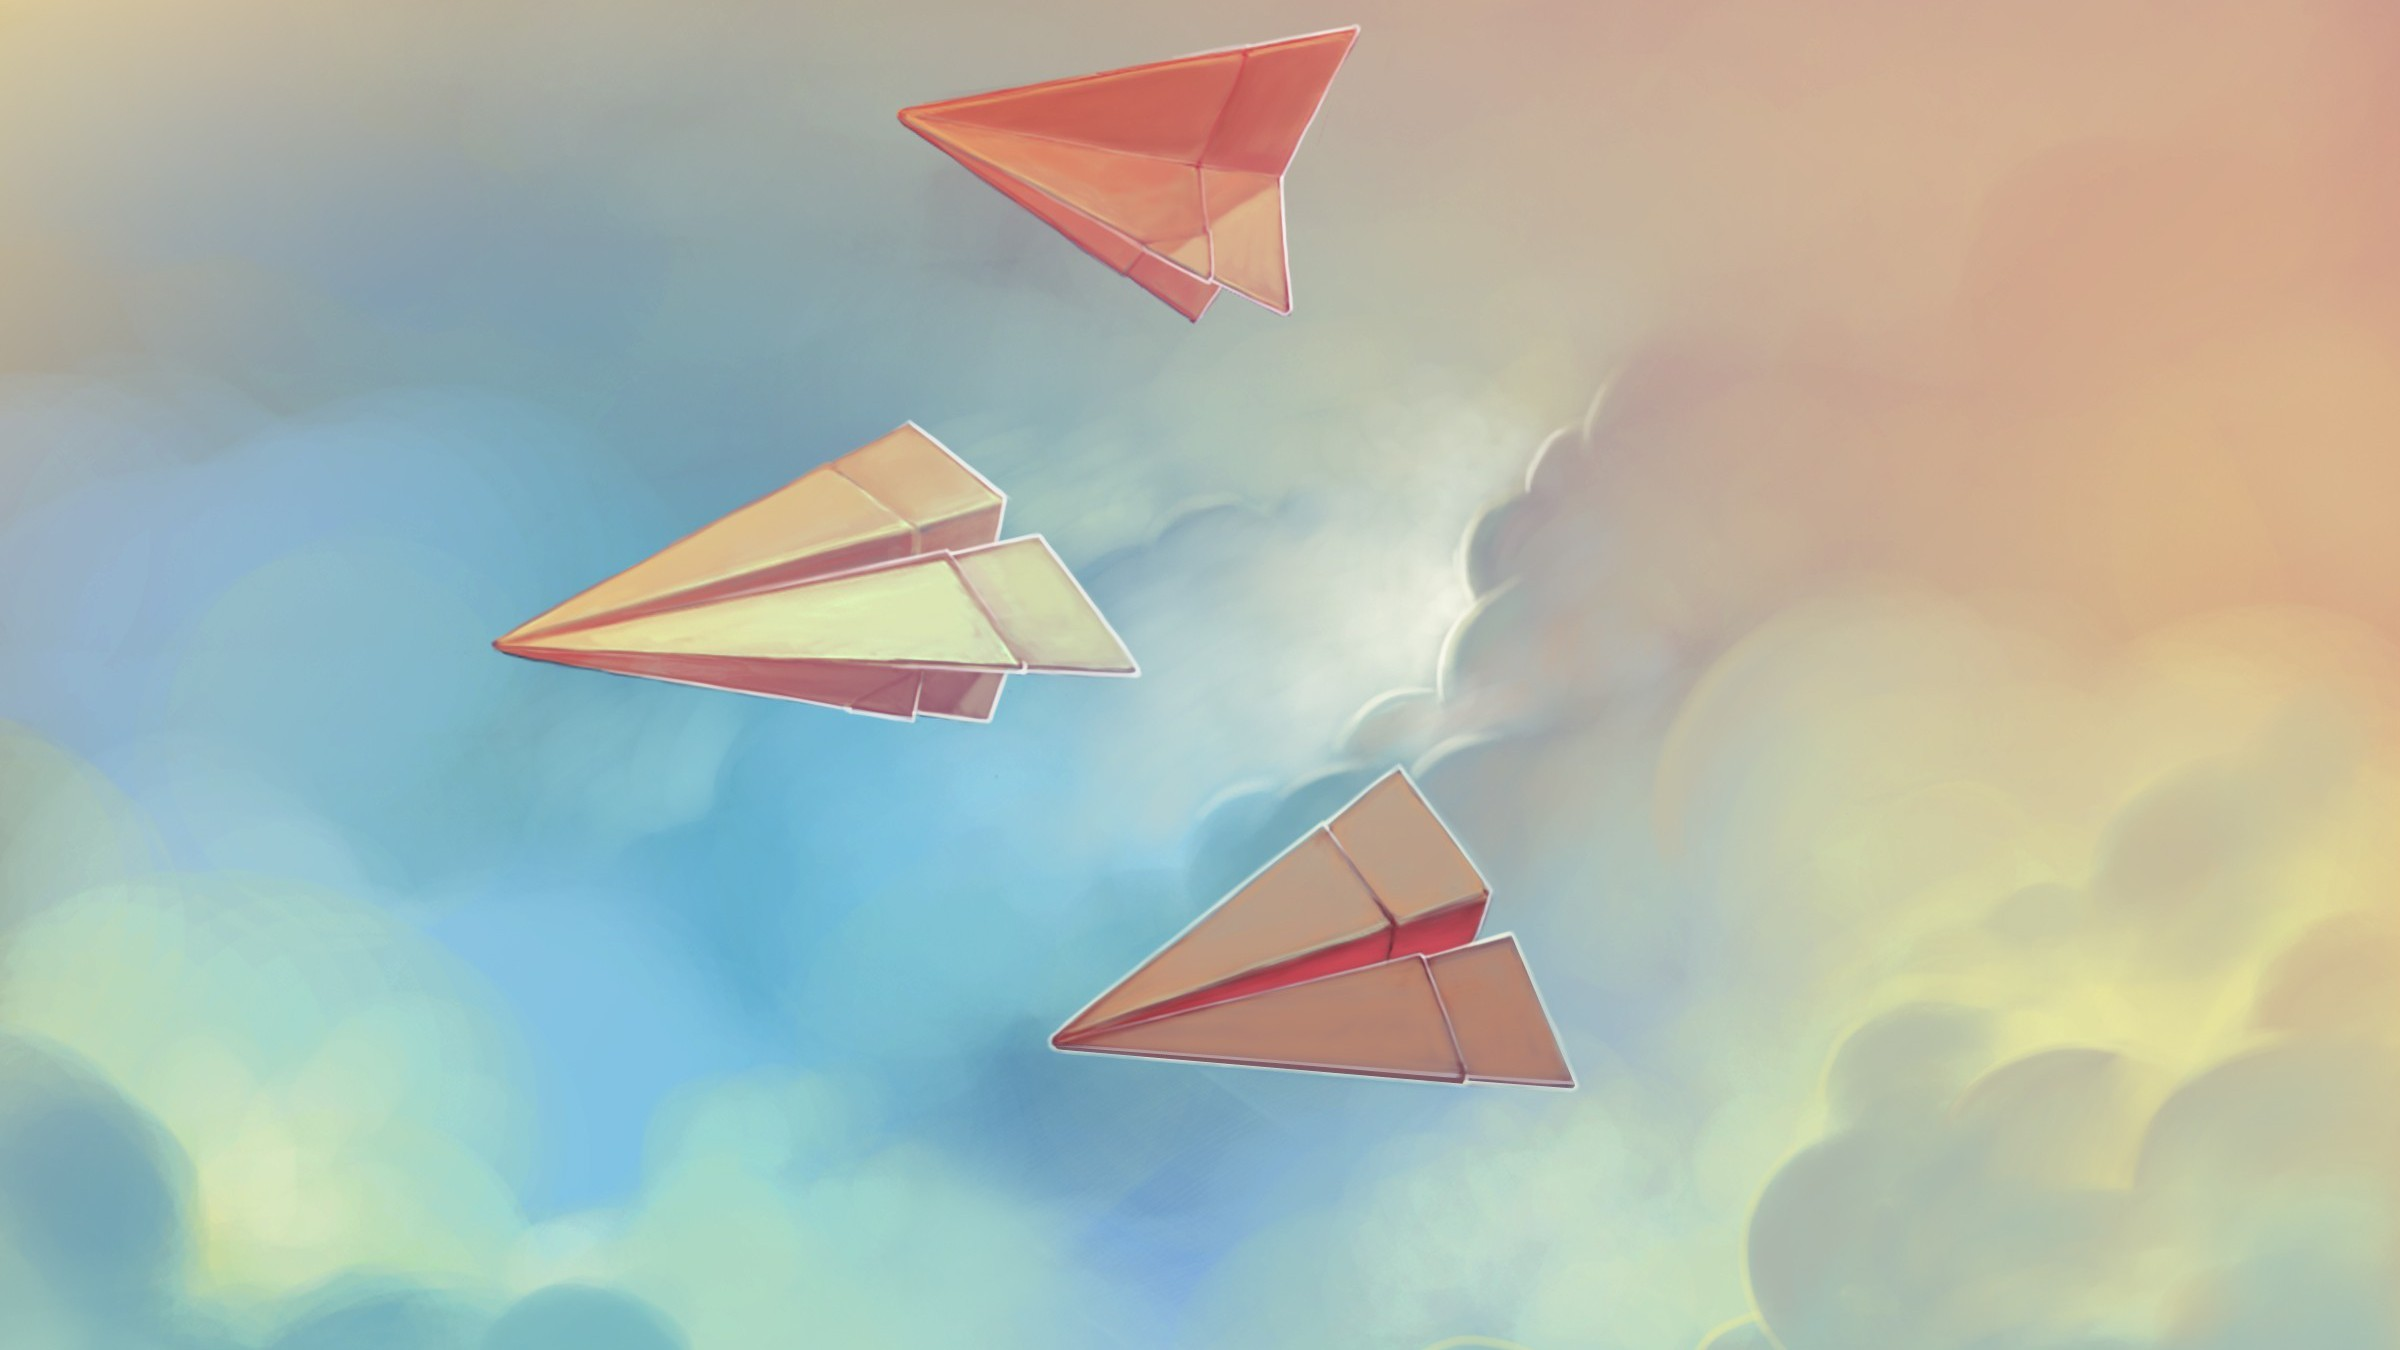 http://cdn.allwallpaper.in/wallpapers/2400x1350/14548/artwork-paper-plane-2400x1350-wallpaper.jpg